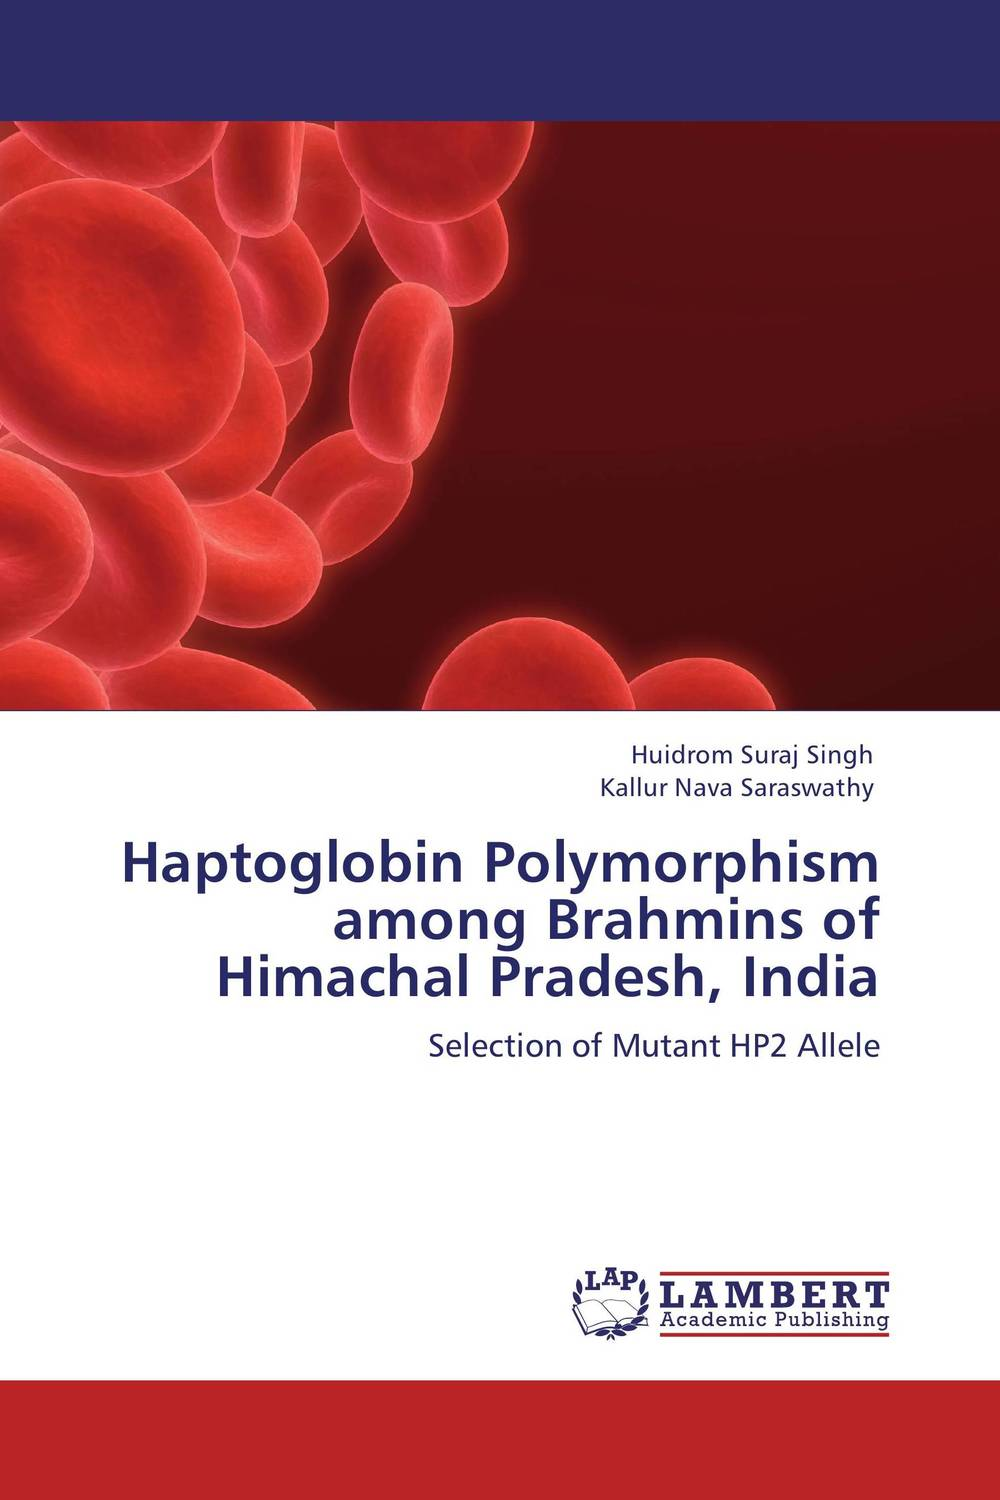 Haptoglobin Polymorphism among Brahmins of Himachal Pradesh, India haptoglobin phenotypes distribution among sudanese leukemic patients